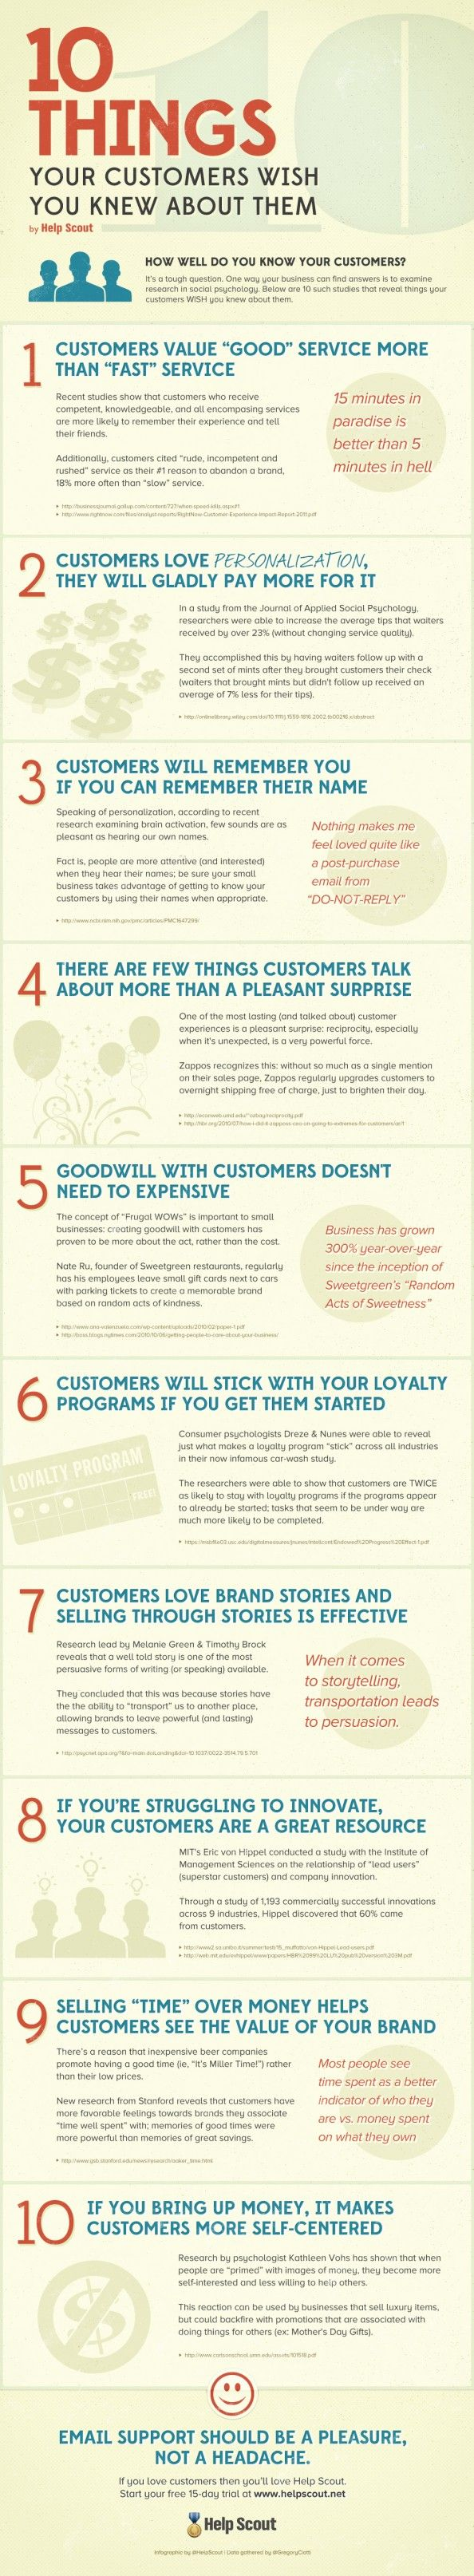 10 Things Your Customers WISH You Knew About Them Infographic